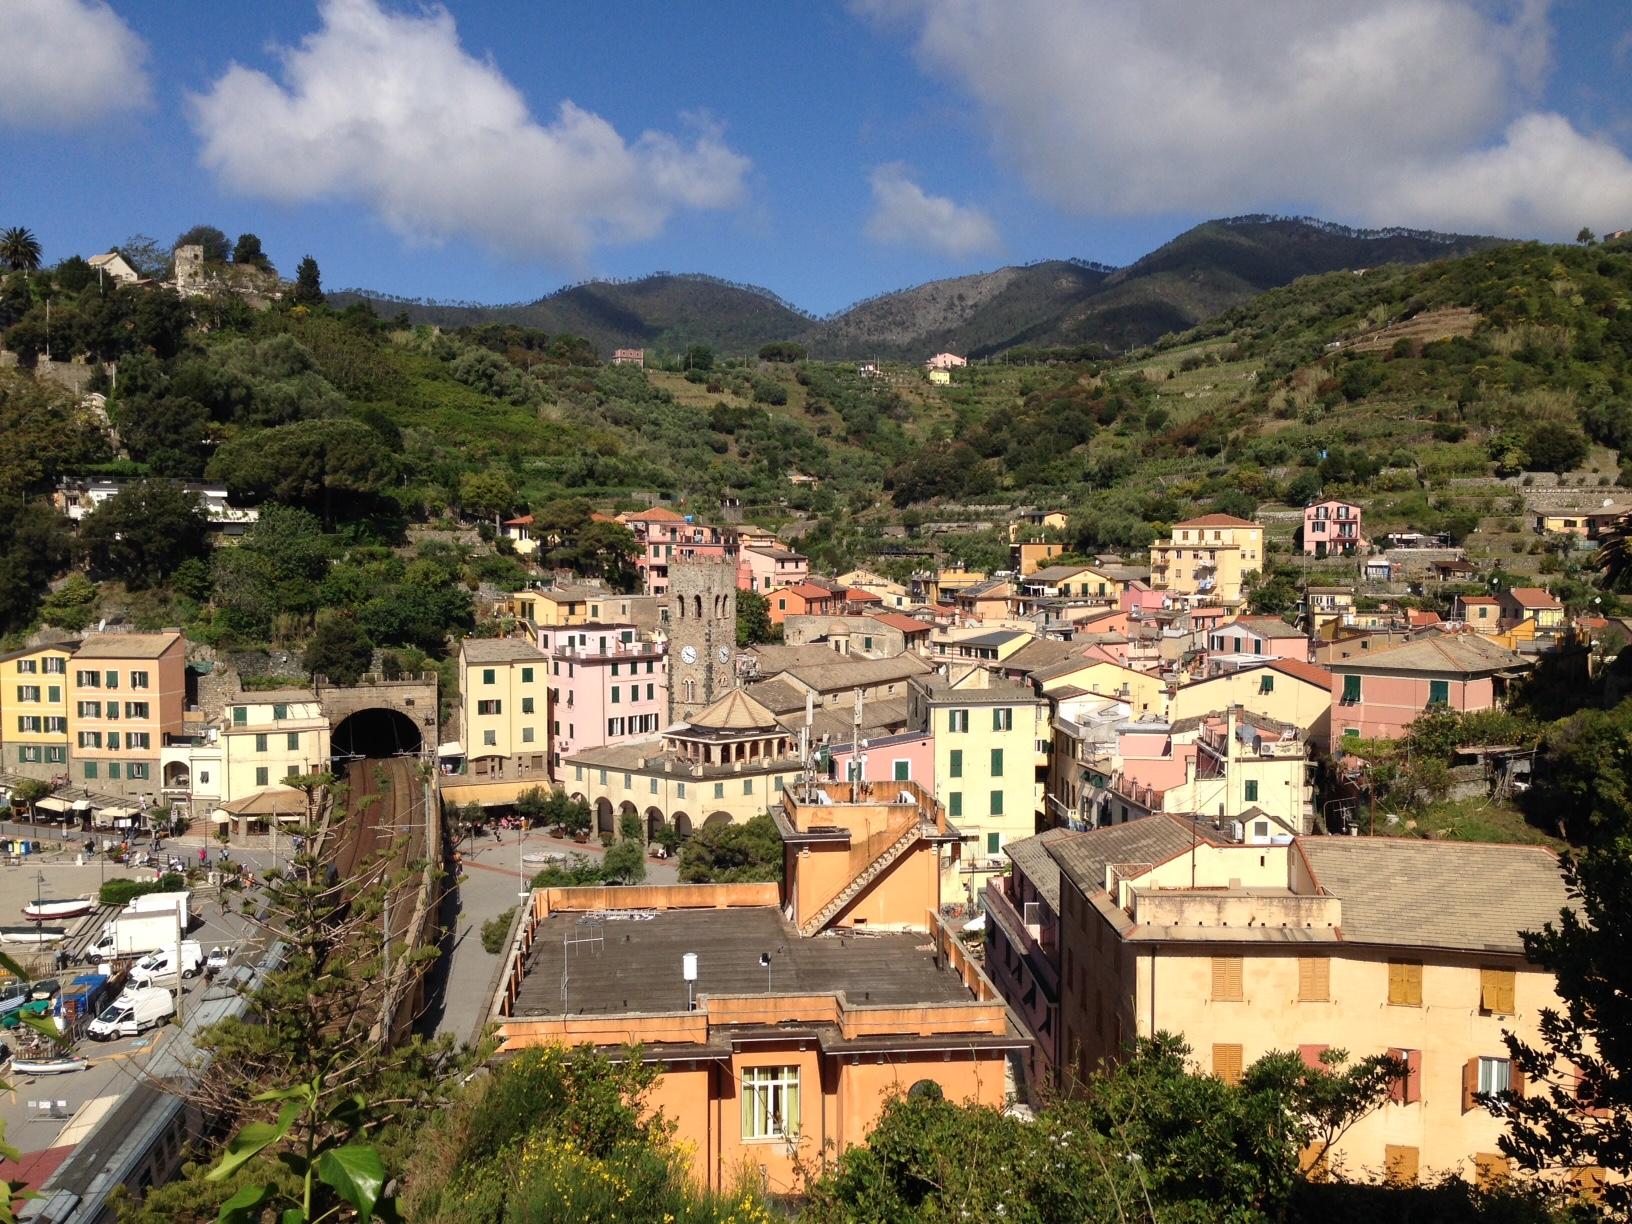 Monterosso: the view from the trail to Vernazza after 10 minutes or so.